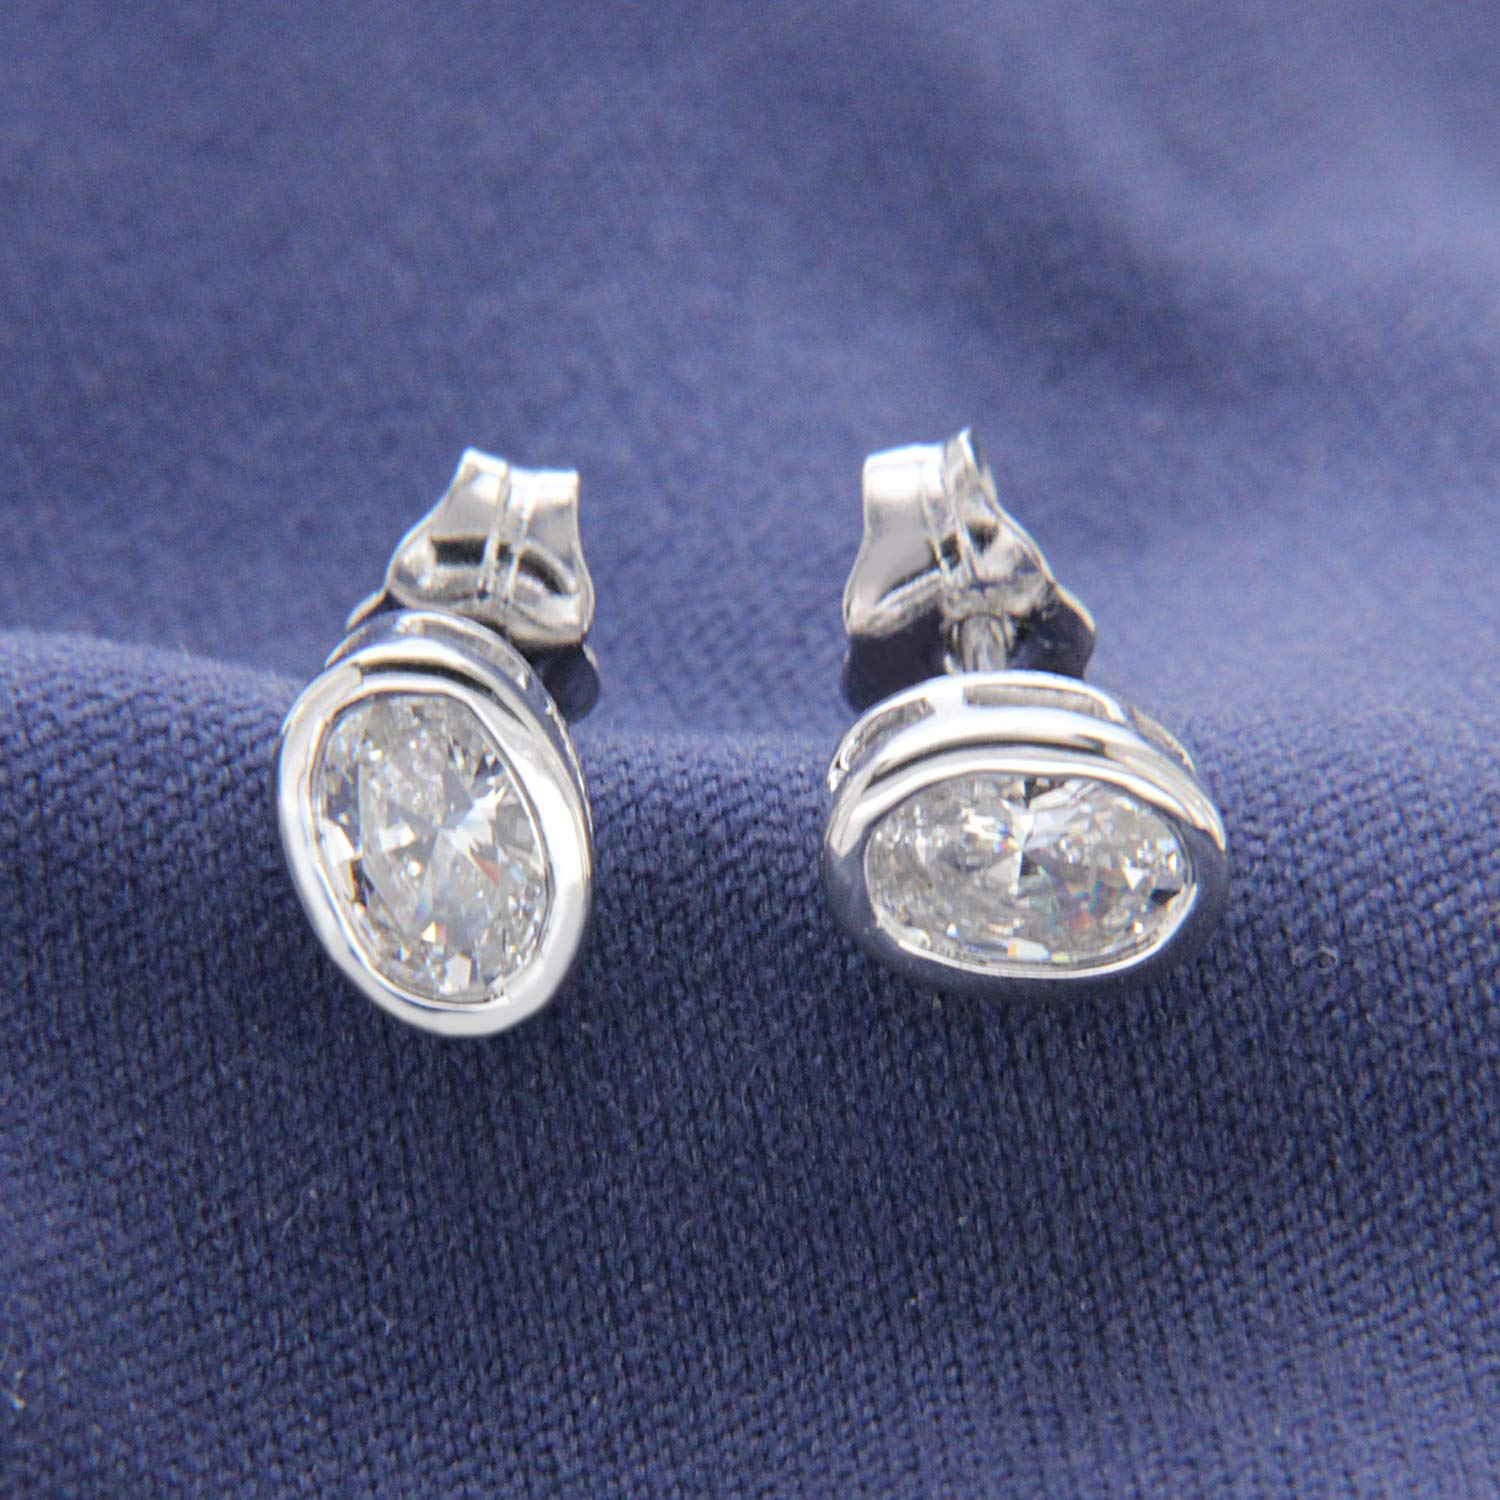 0.25 ct Oval Cut Simulated Diamond 14k White Gold Finish Solitaire Stud Earrings for Womens